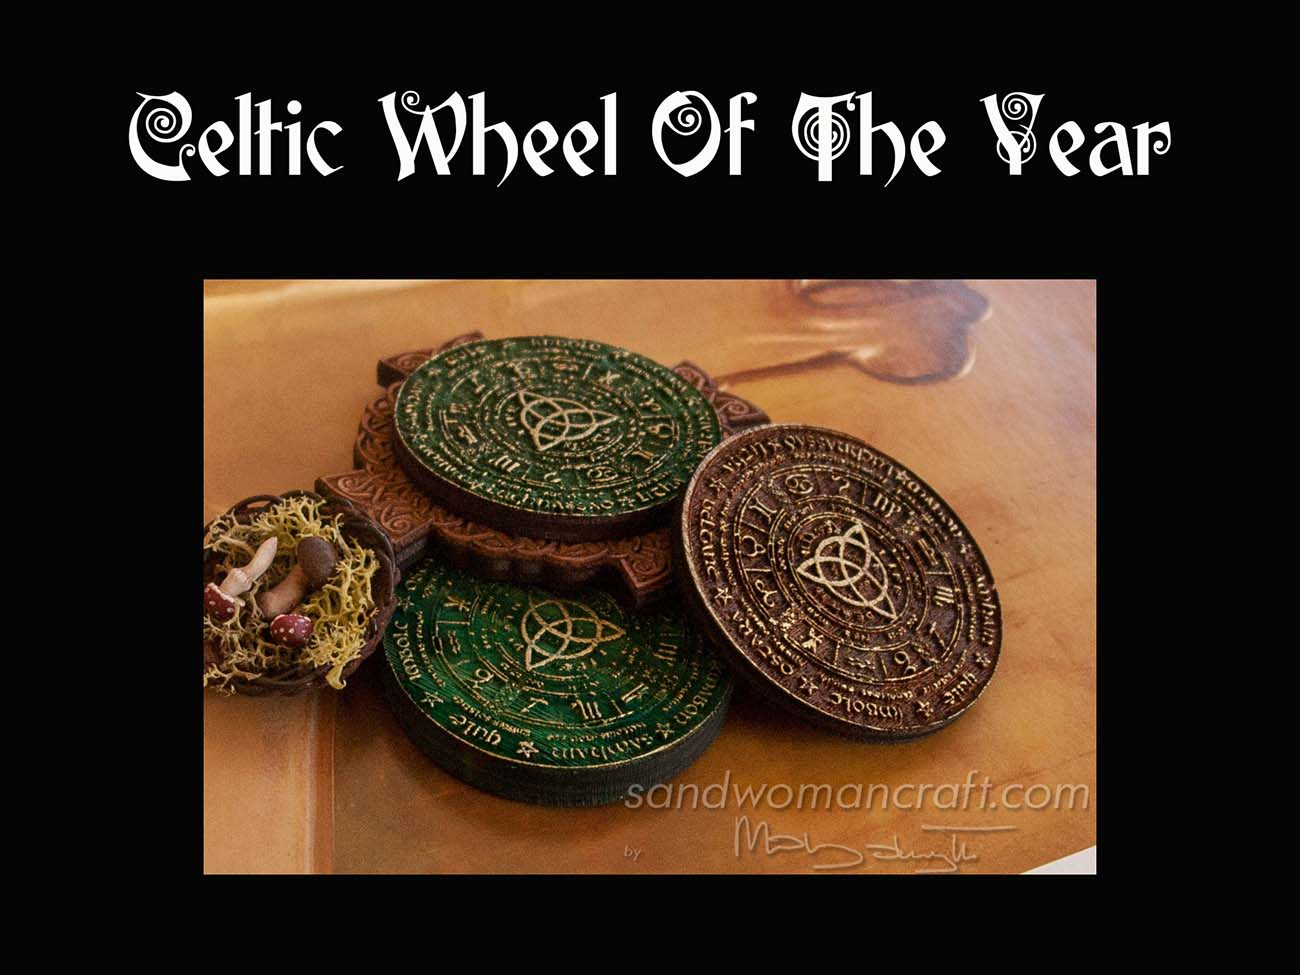 Miniature Celtic Wheel of The Year